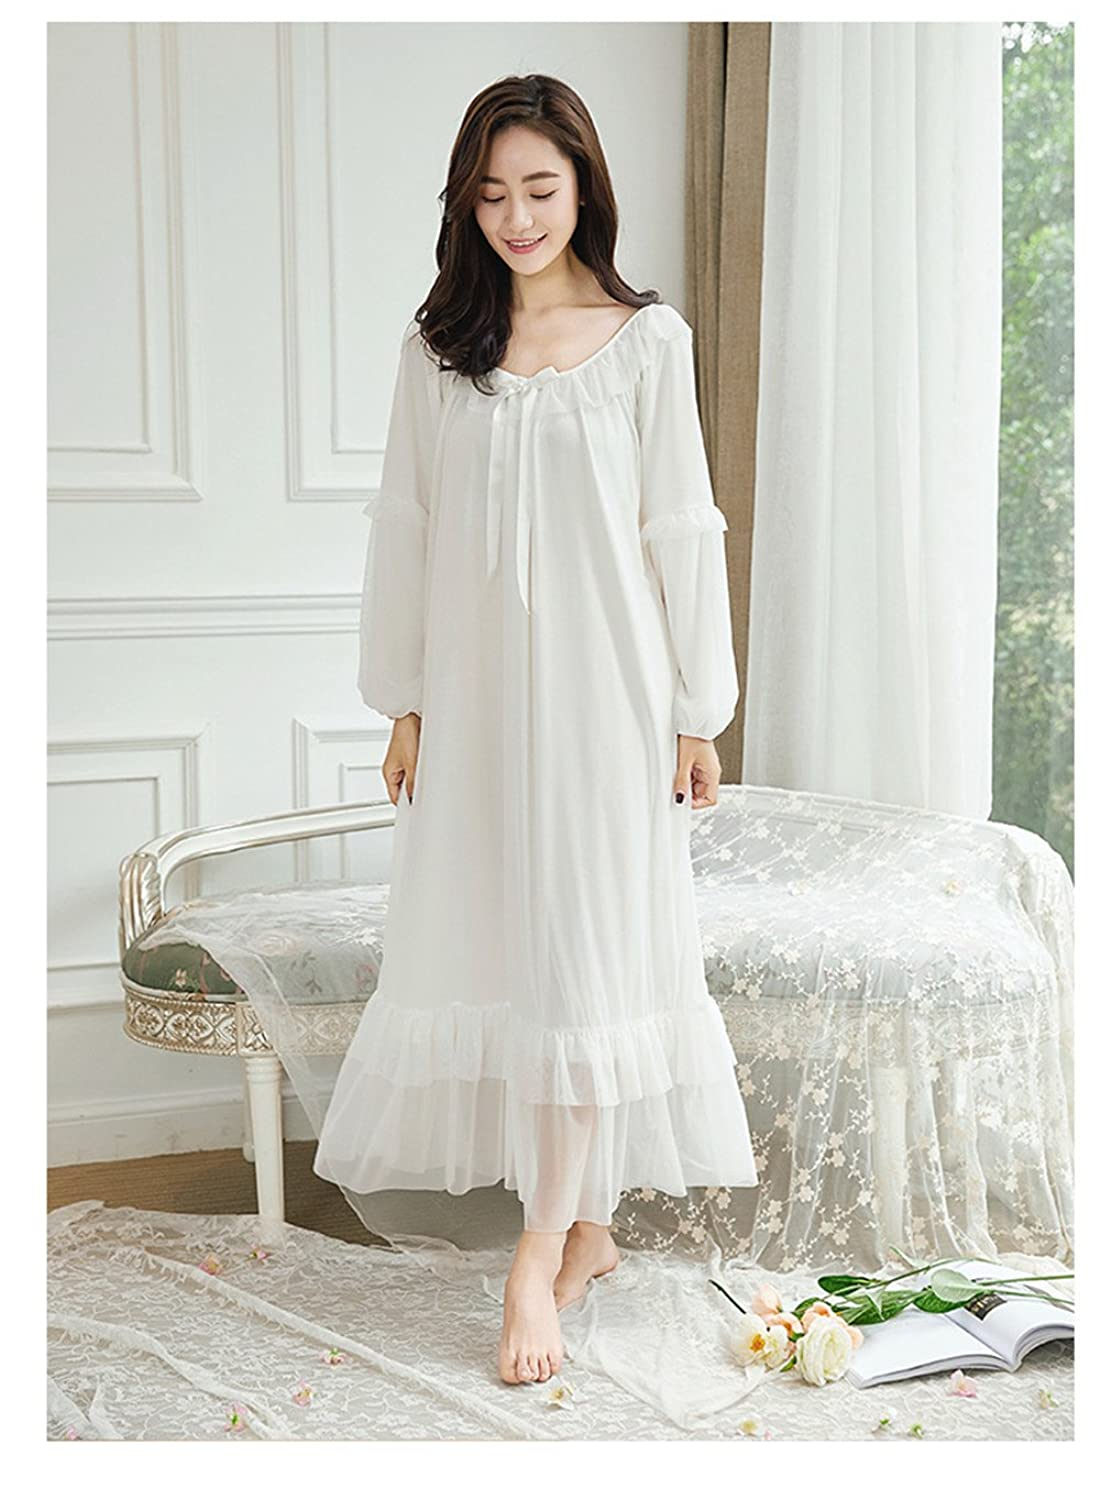 Vintage Inspired Nightgowns, Robes, Pajamas, Baby Dolls Asherbaby Womens Long Sleeve Vintage Nightgown Victorian Sleepwear Lounge Dress $35.99 AT vintagedancer.com